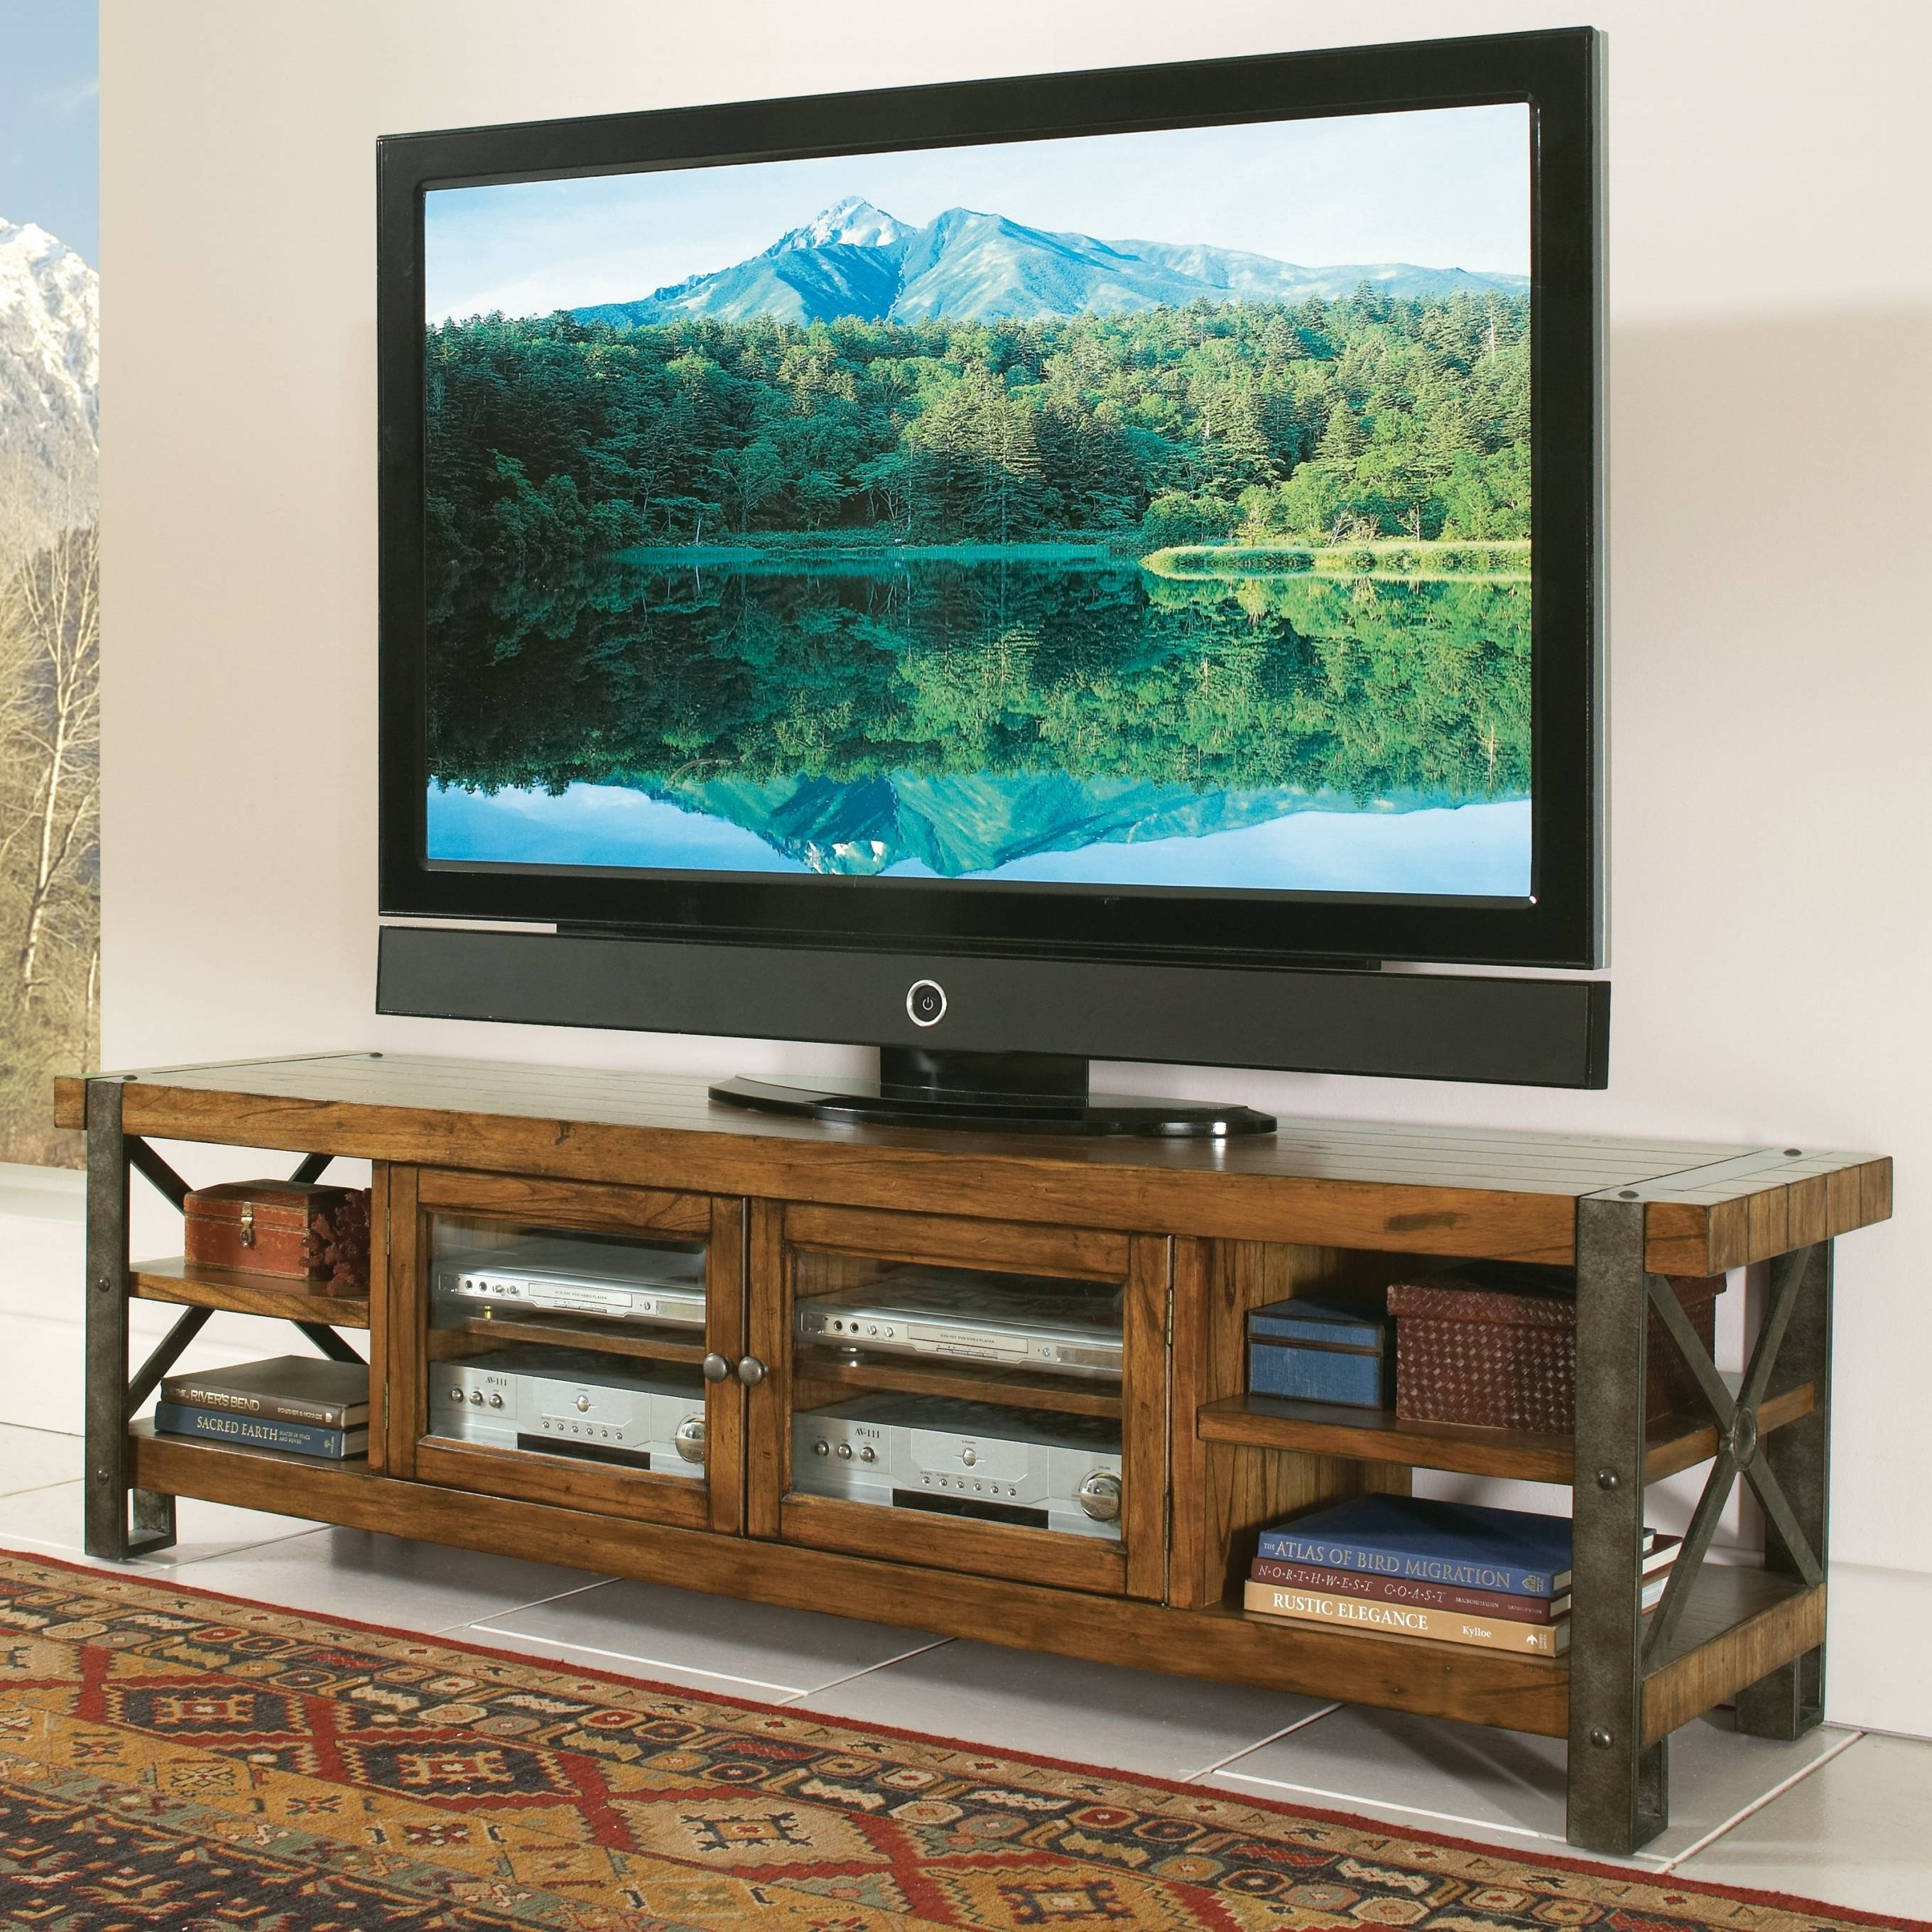 Luxury 70 Inch Tv Stands Inspirational   Vgmnation Throughout Luxury Tv Stands (View 10 of 15)